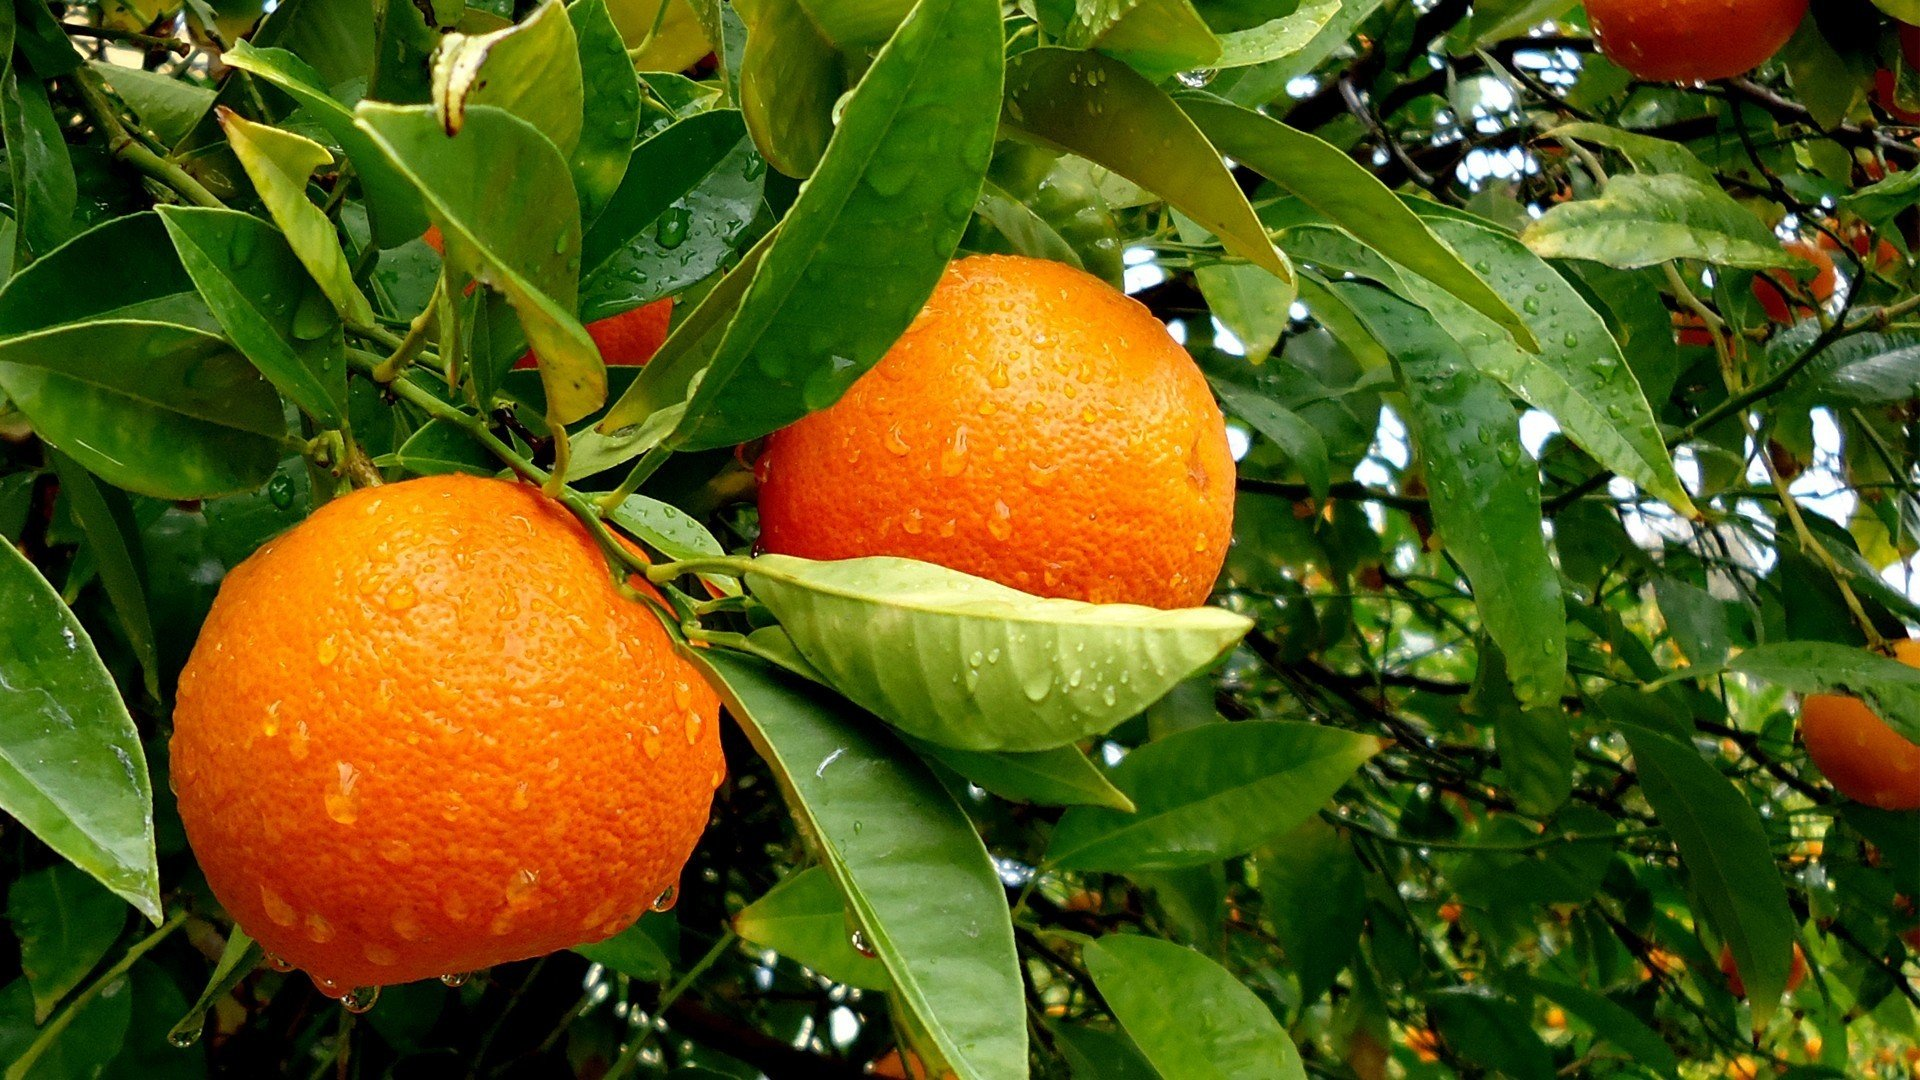 Fruits leaves oranges water drops fruit trees wallpaper ...